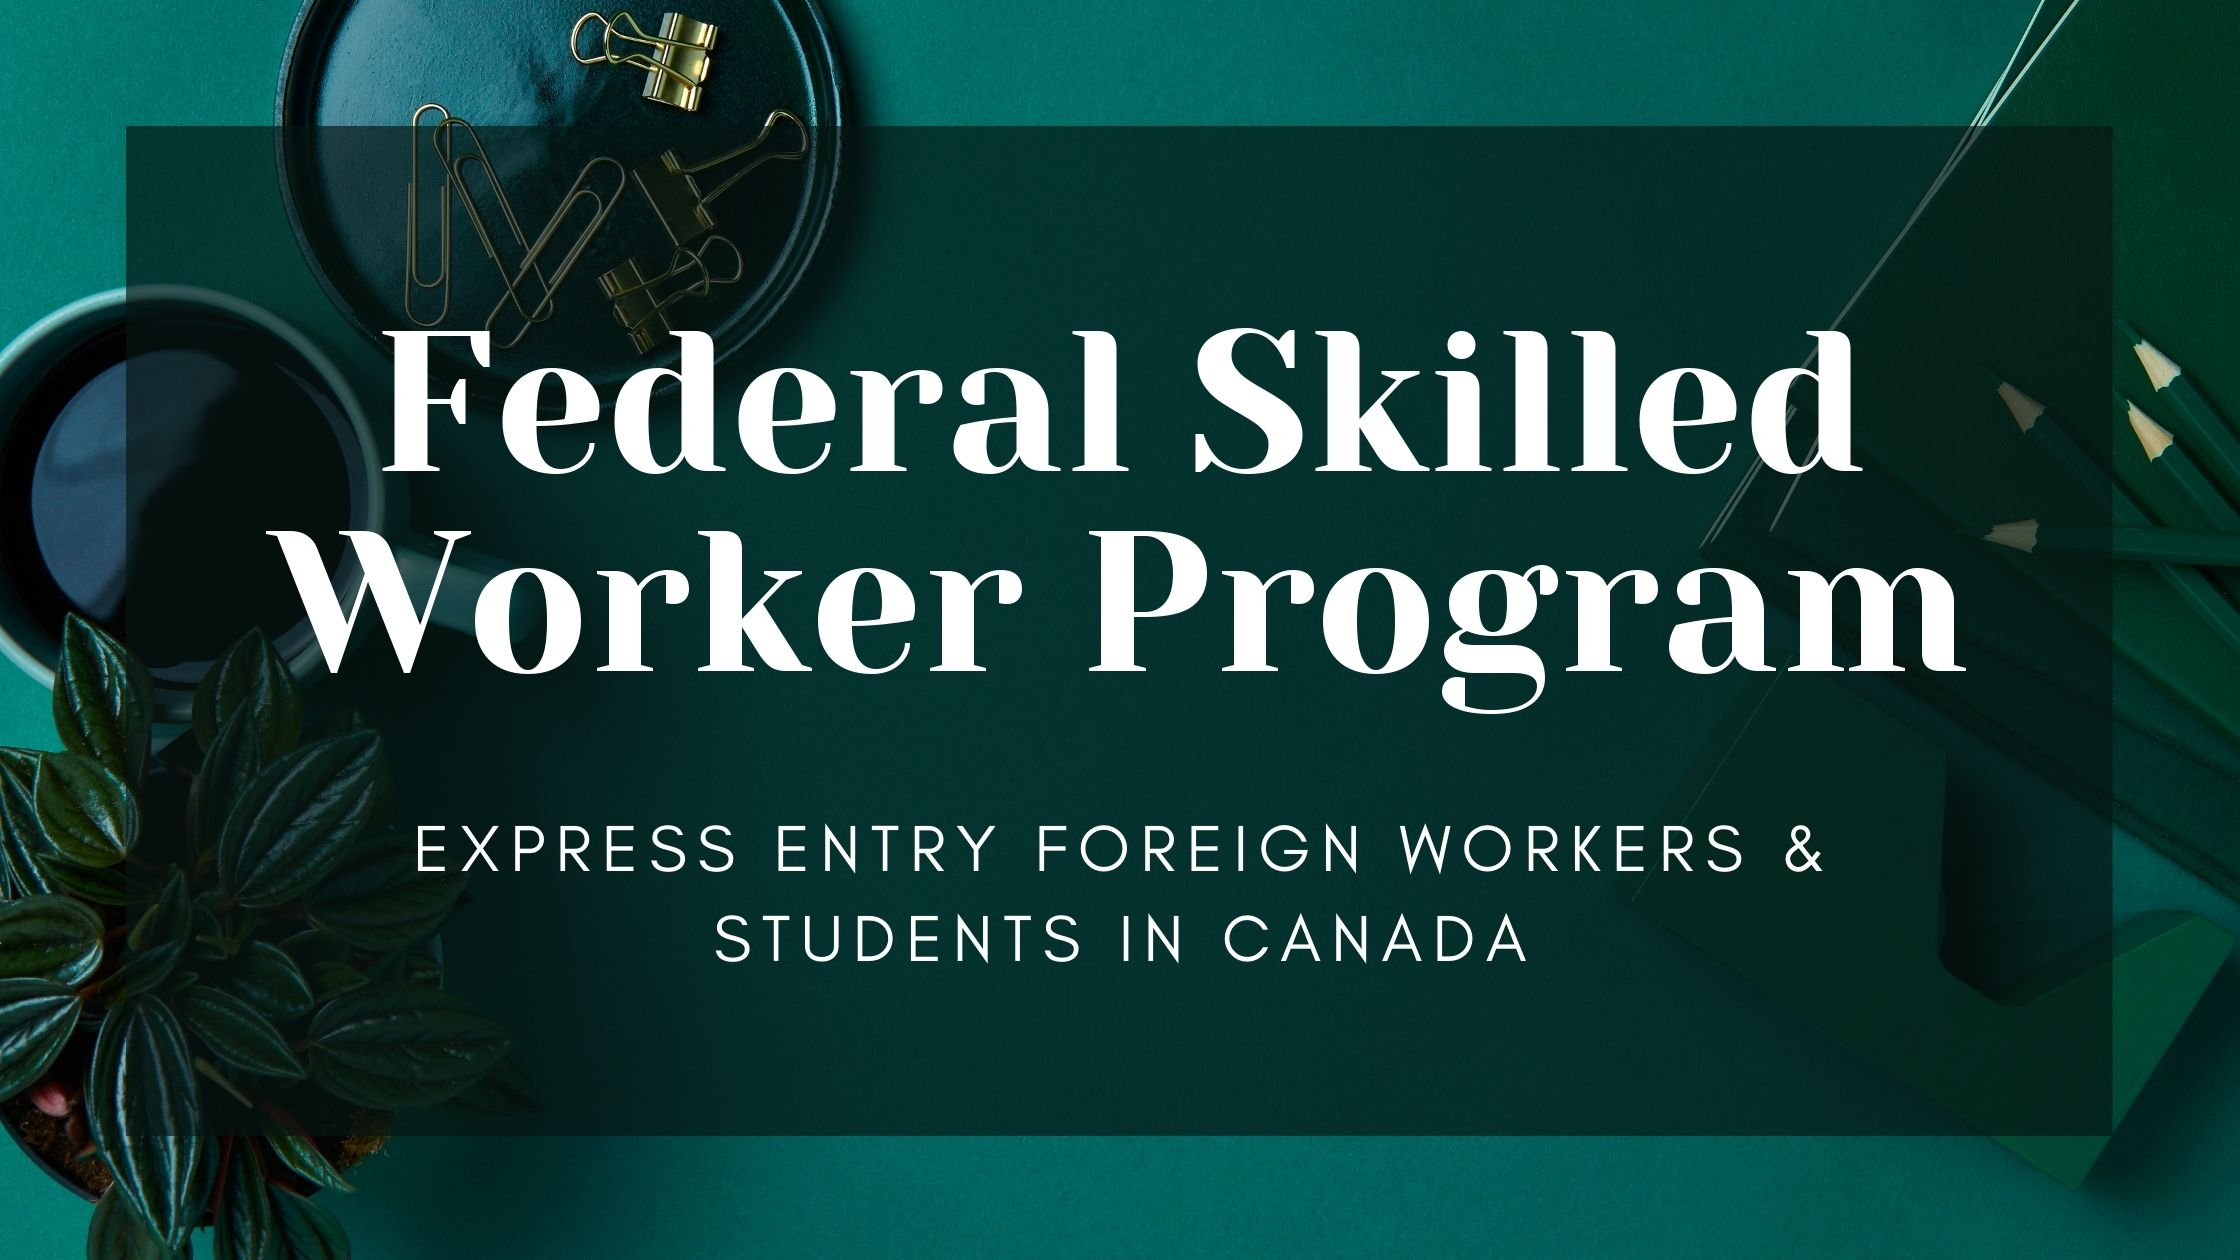 FSW Program: Express Entry Foreign Workers & Students in Canada